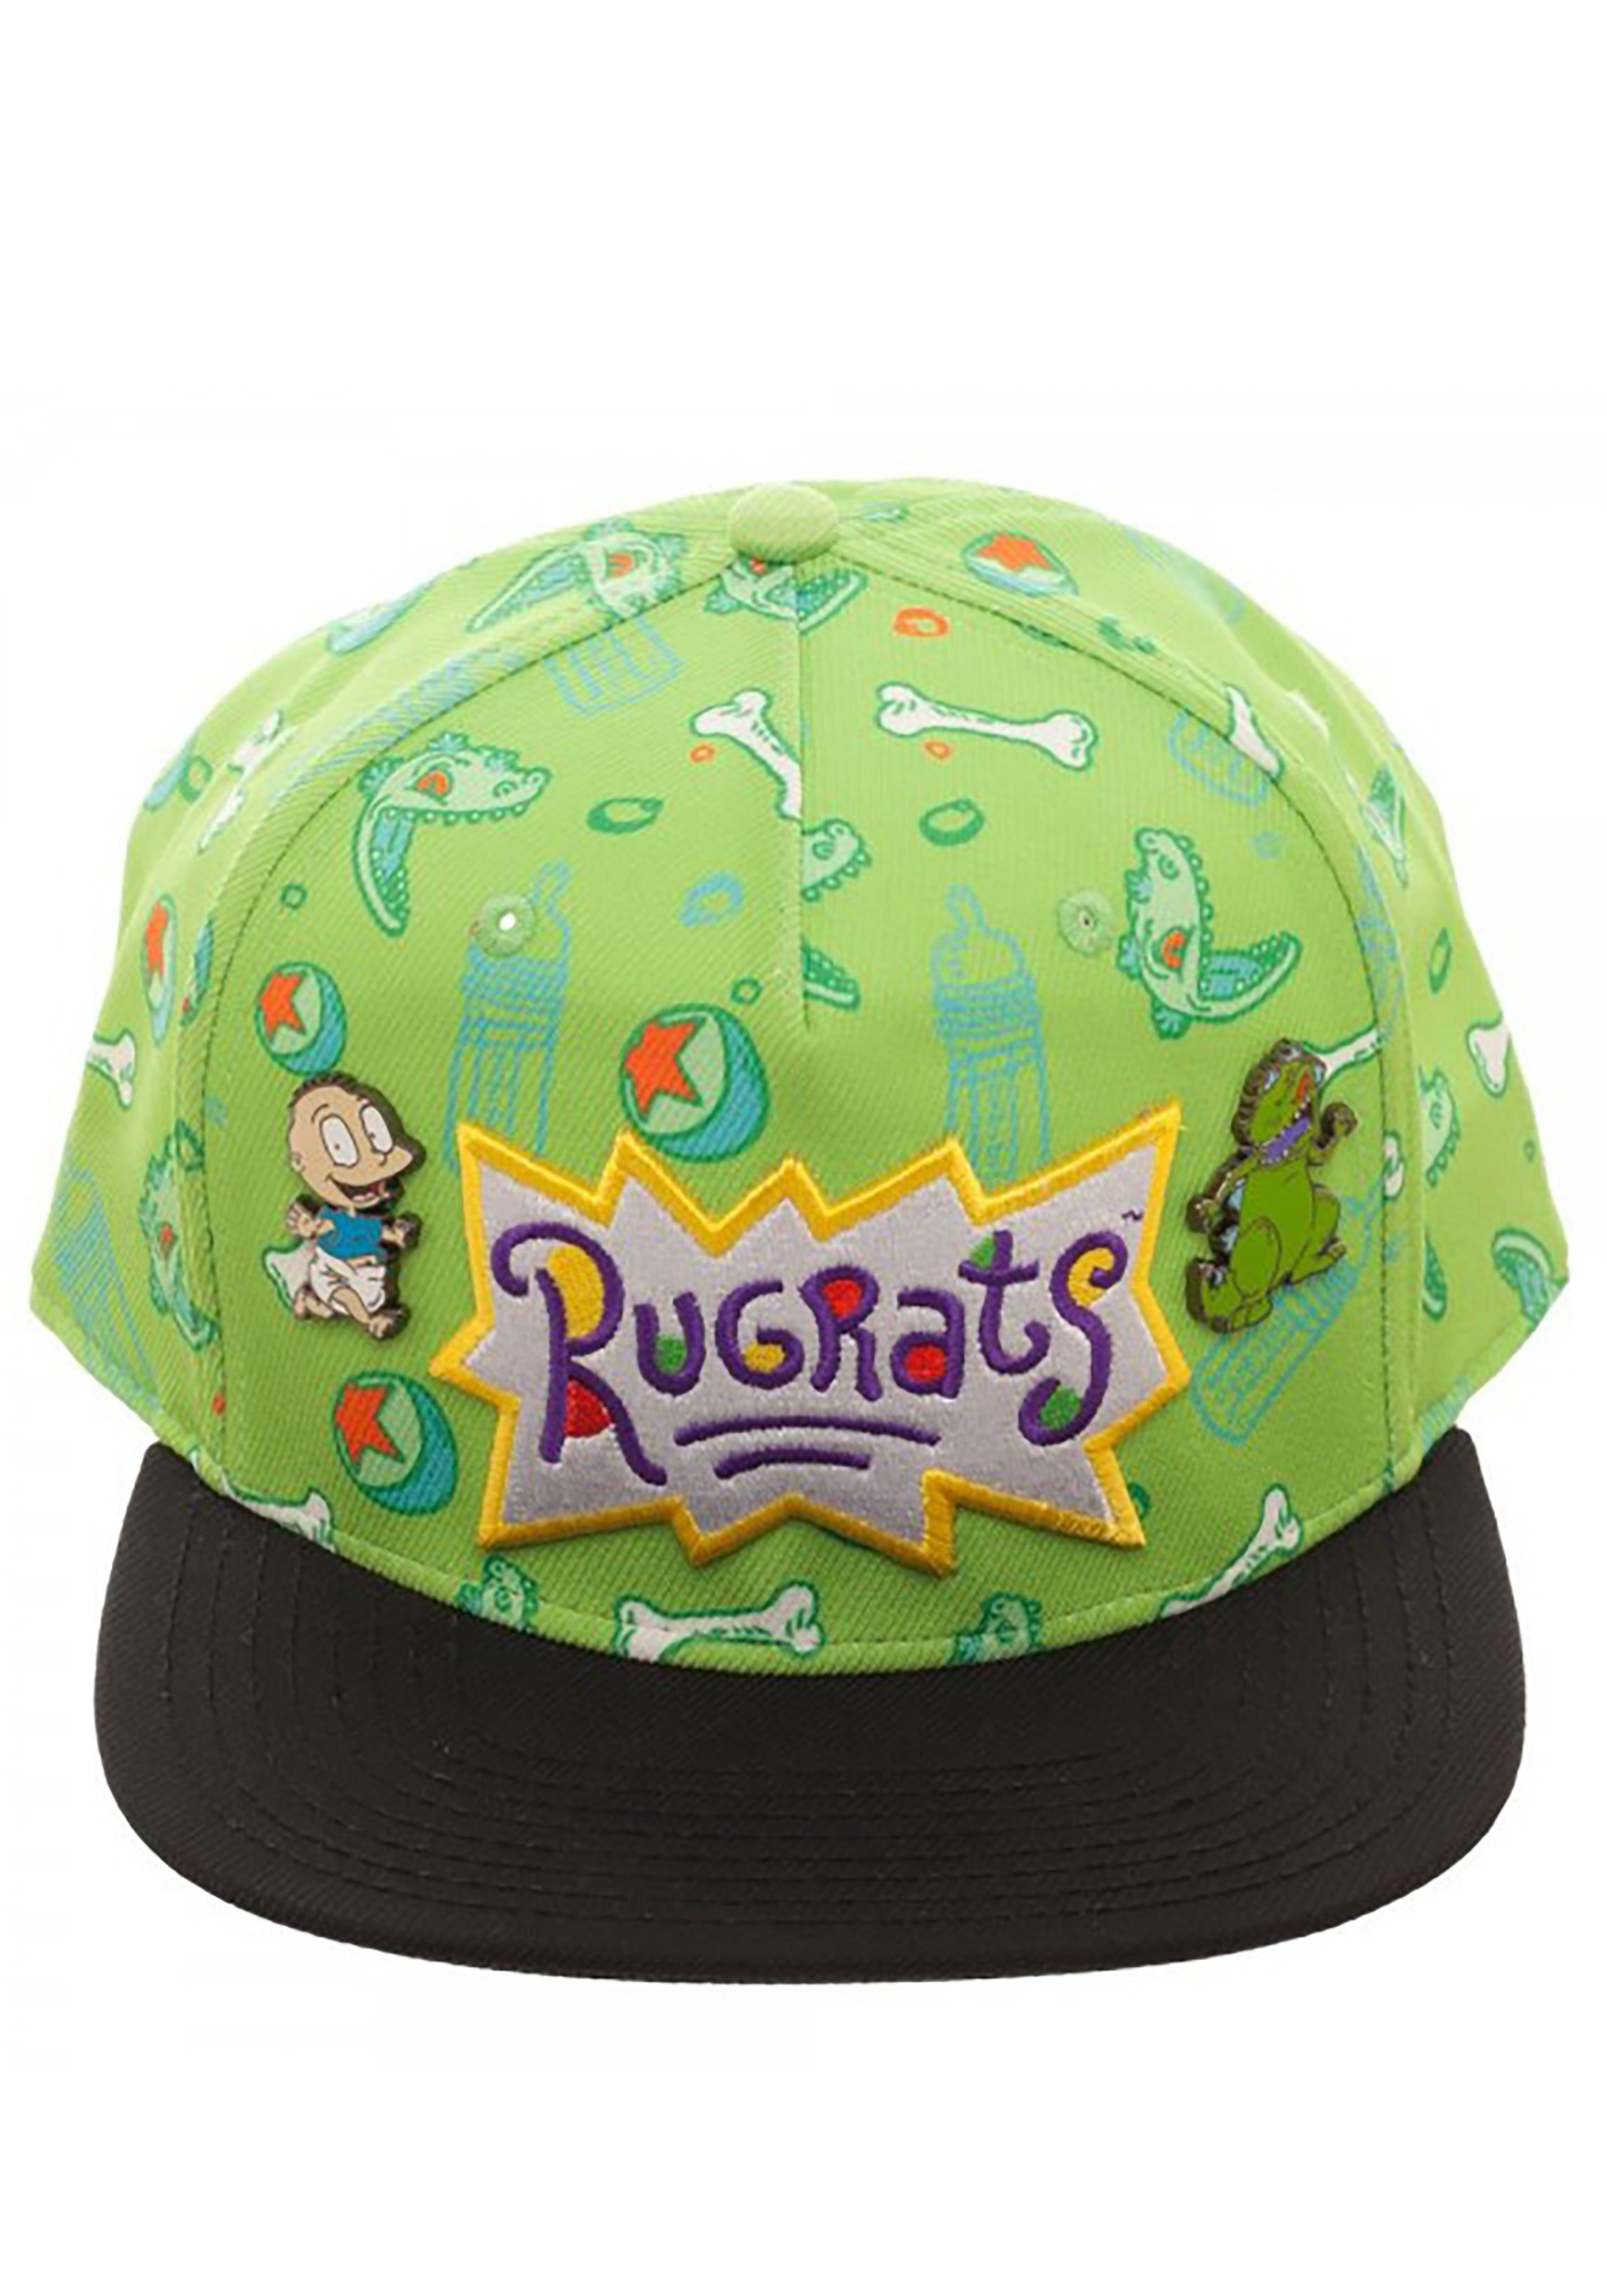 free shipping 3abc6 5493a Nickelodeon Rugrats Sublimated Snapback Hat